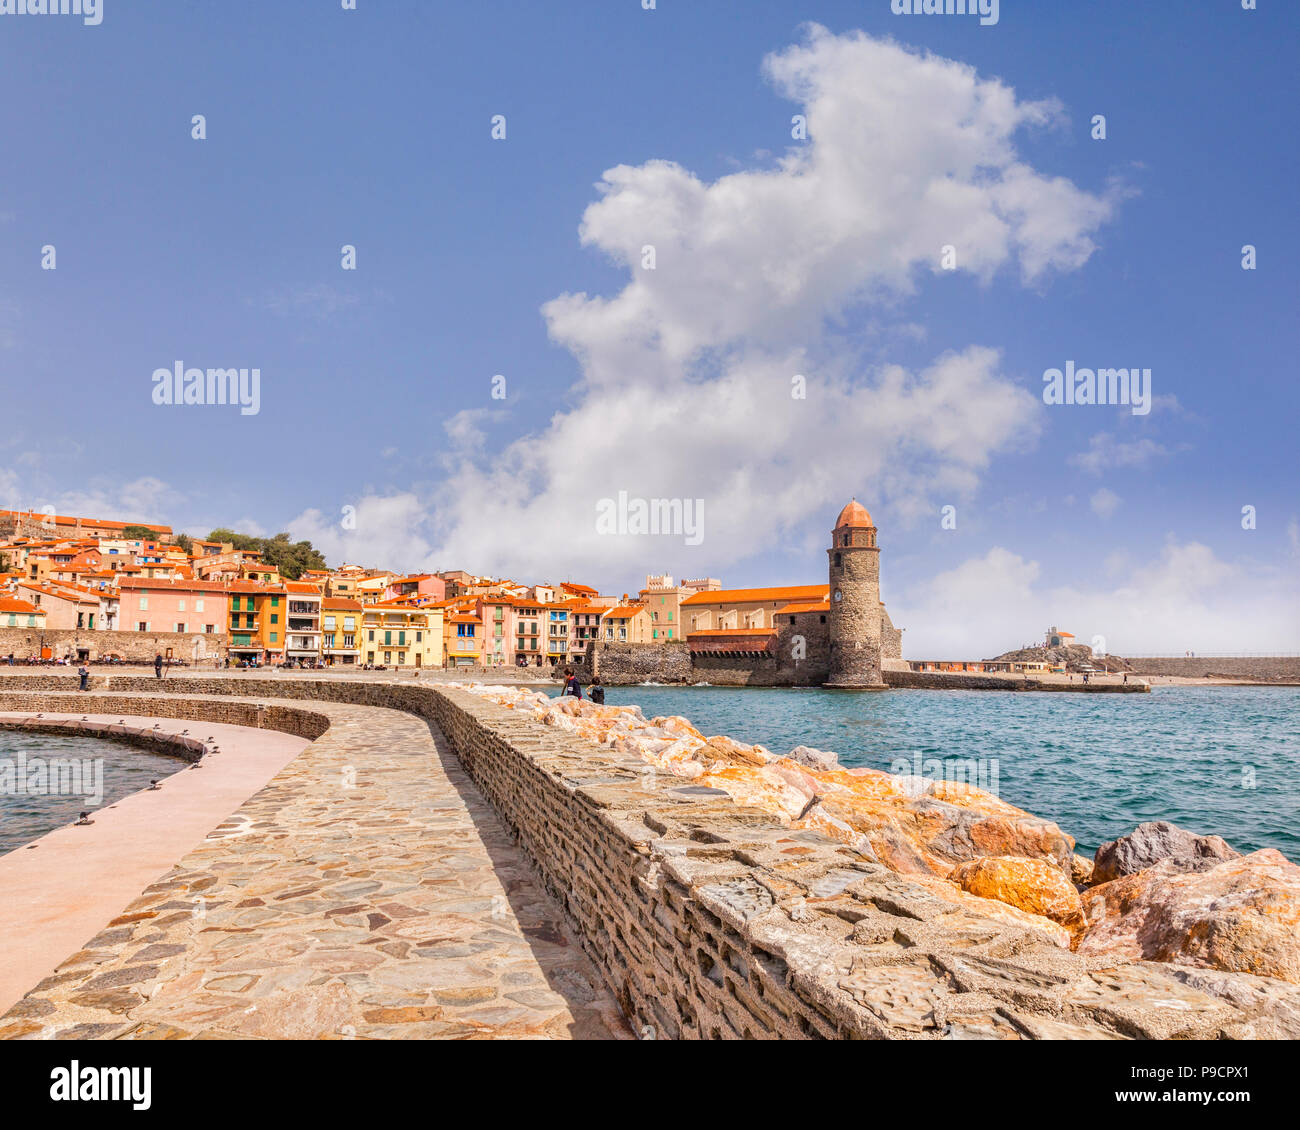 Collioure, Languedoc-Roussillon, Pyrenees-Orientales, France. Stock Photo